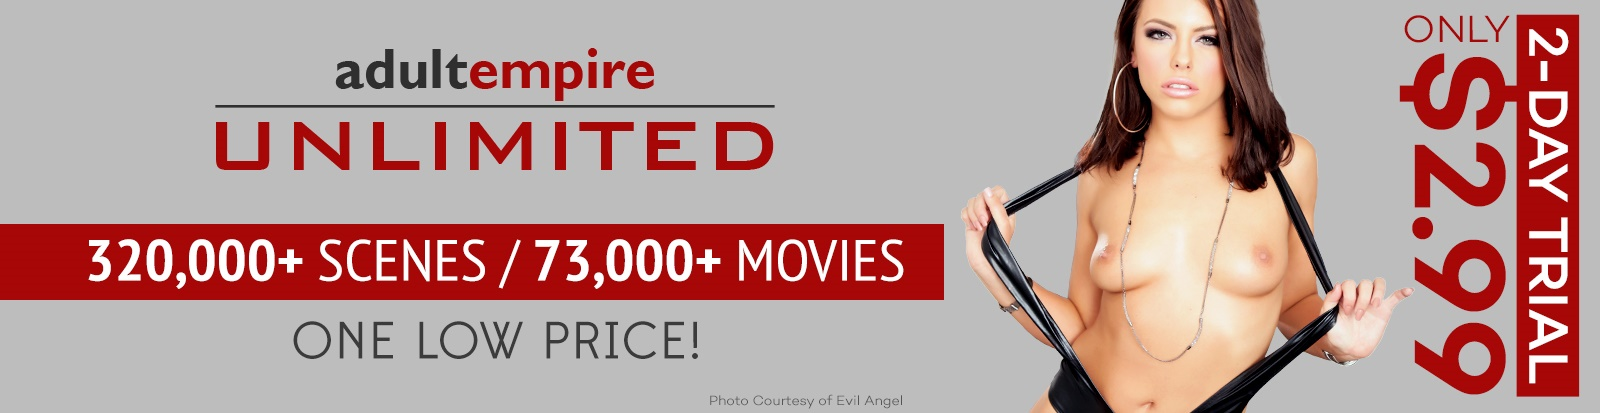 Join Adult Empire Unlimited and get 73,000+ movies & 320,000+ Scenes. -Join now!